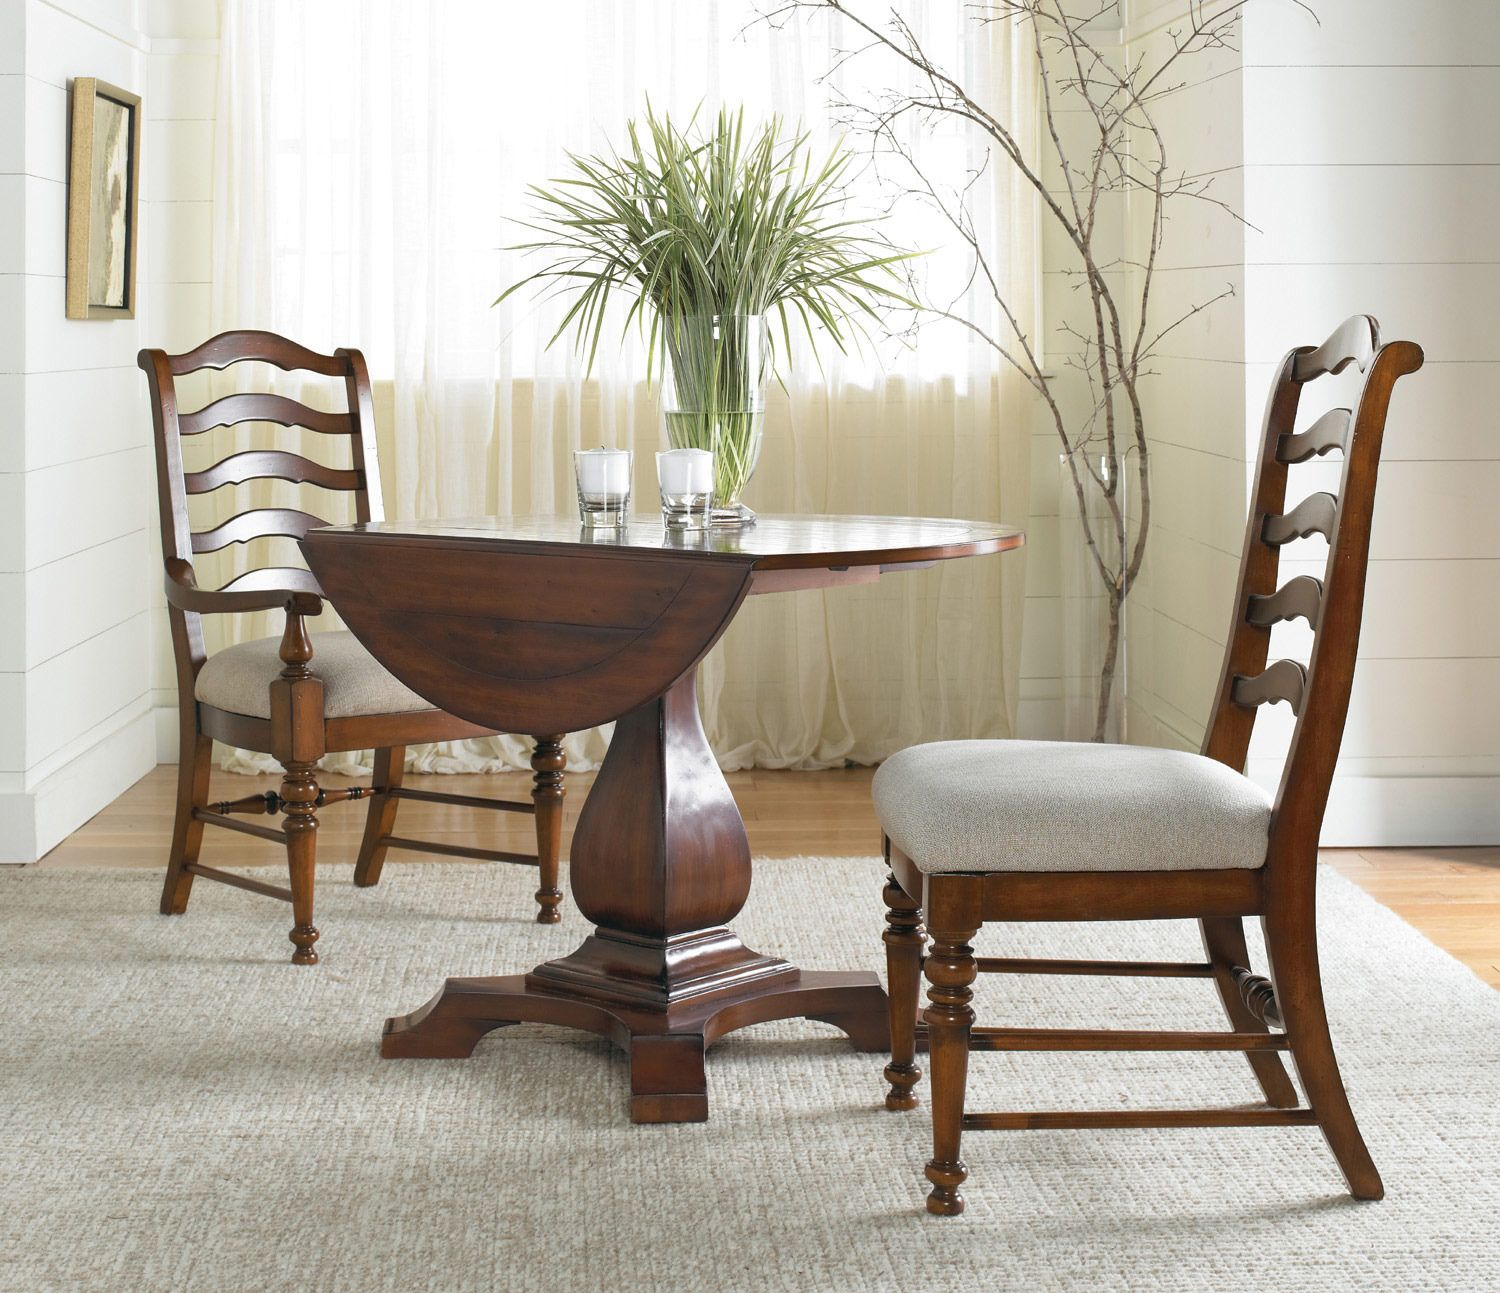 Wonderful Waverly Place Round Drop Leaf Pedestal Dining Table By Hooker Furniture    Home Gallery Stores